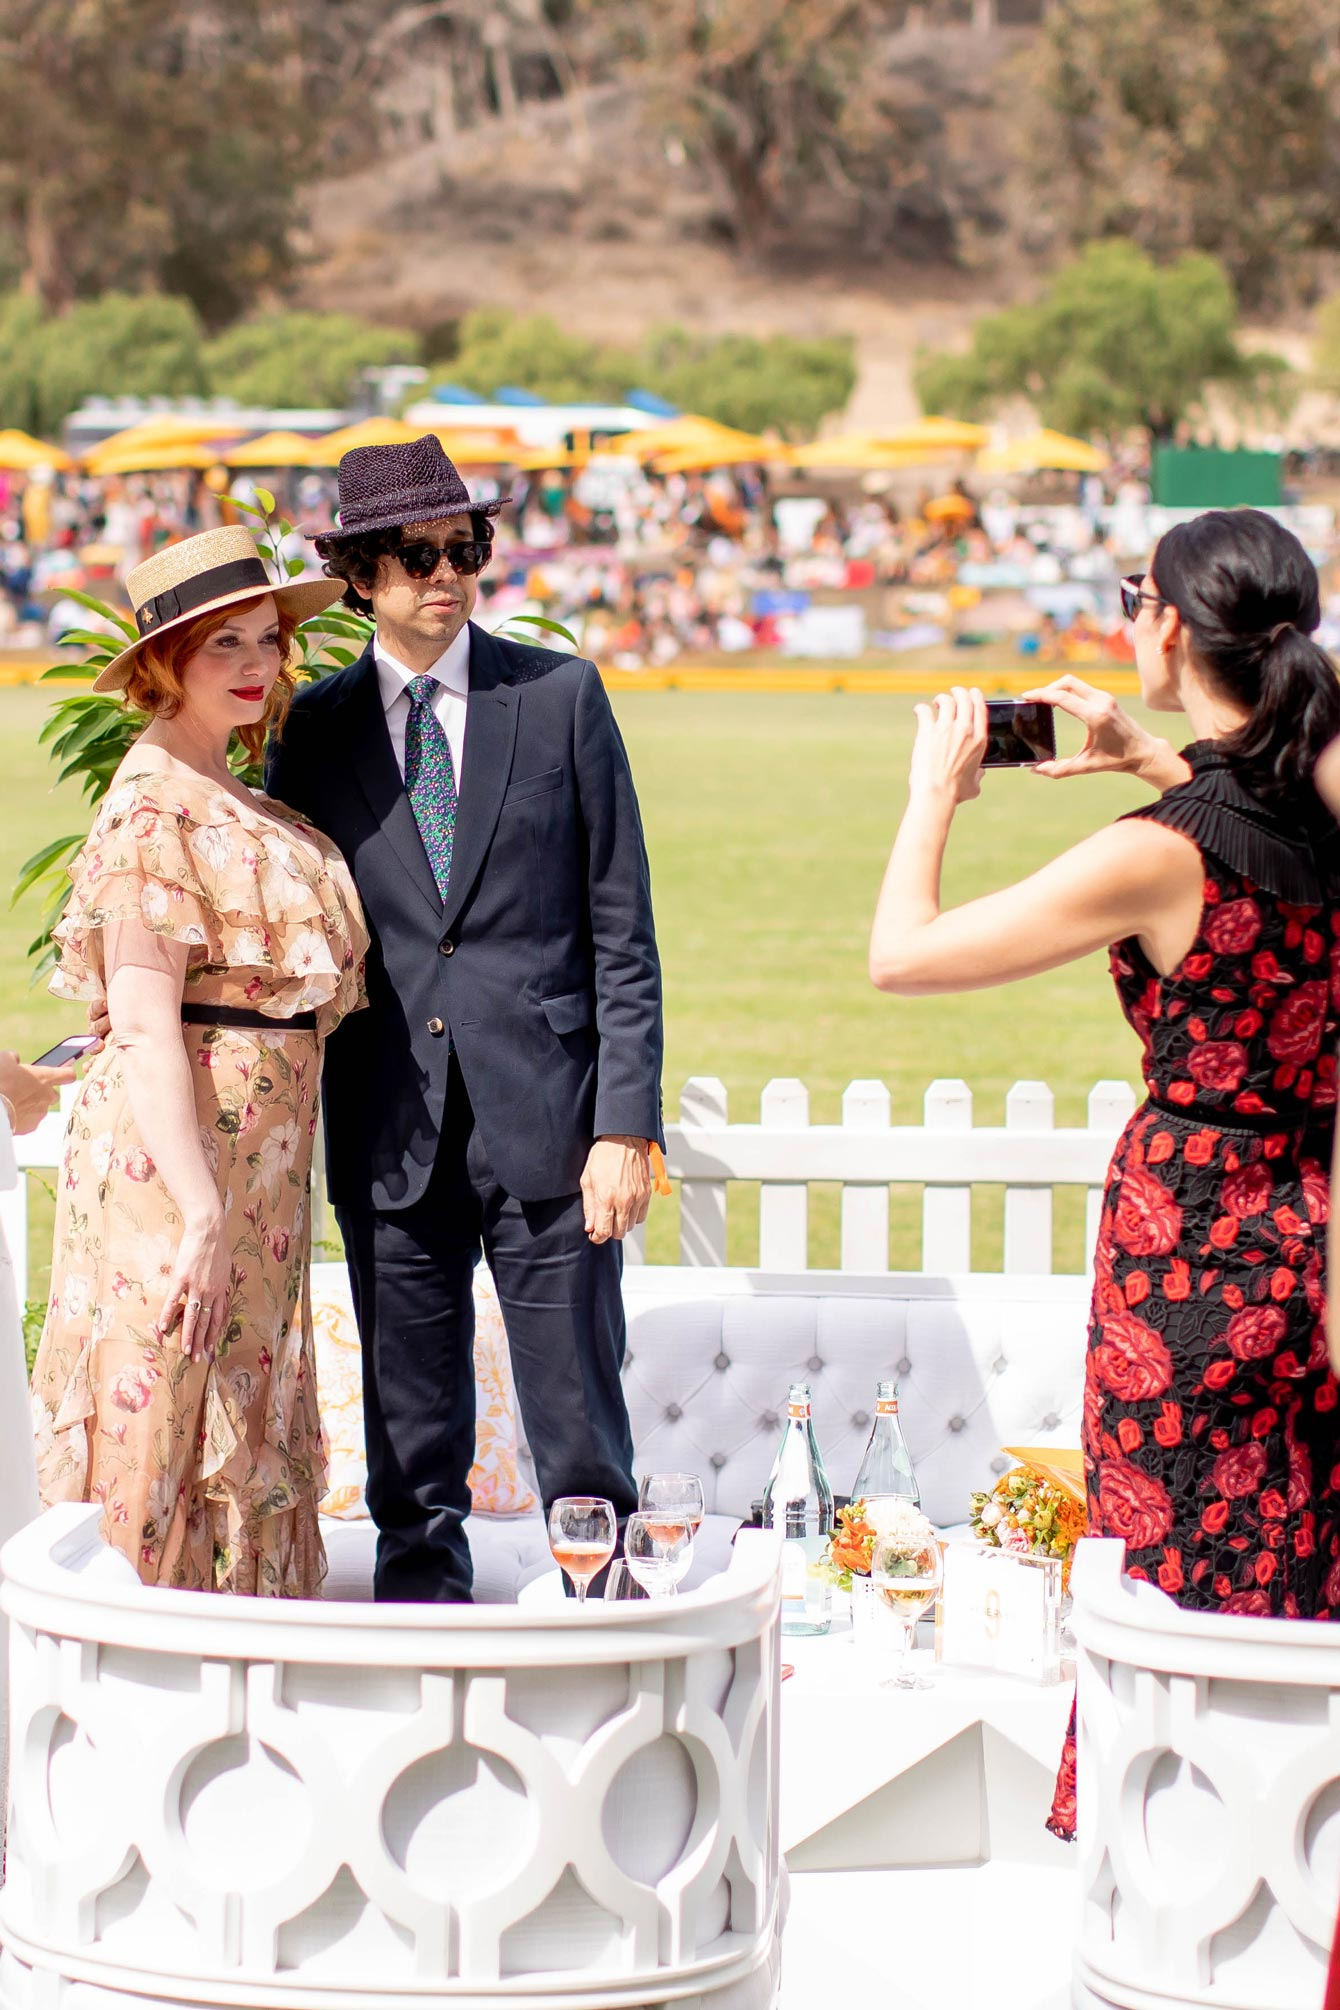 Christina Hendricks Veuve Clicquot Polo Classic